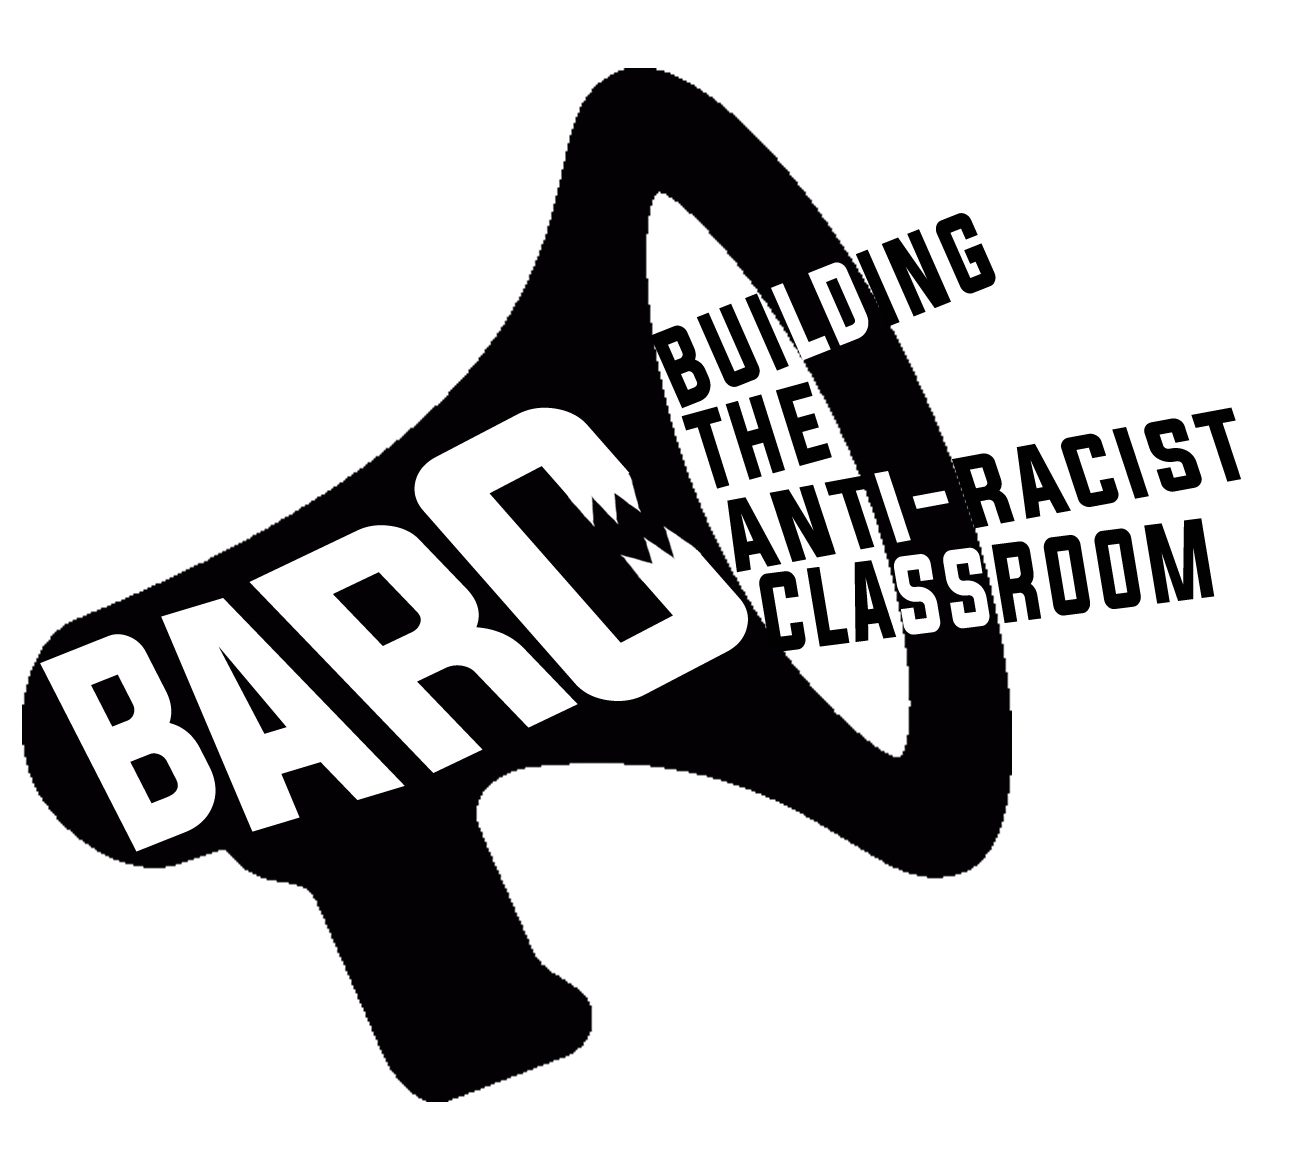 Building the Anti-Racist Classroom